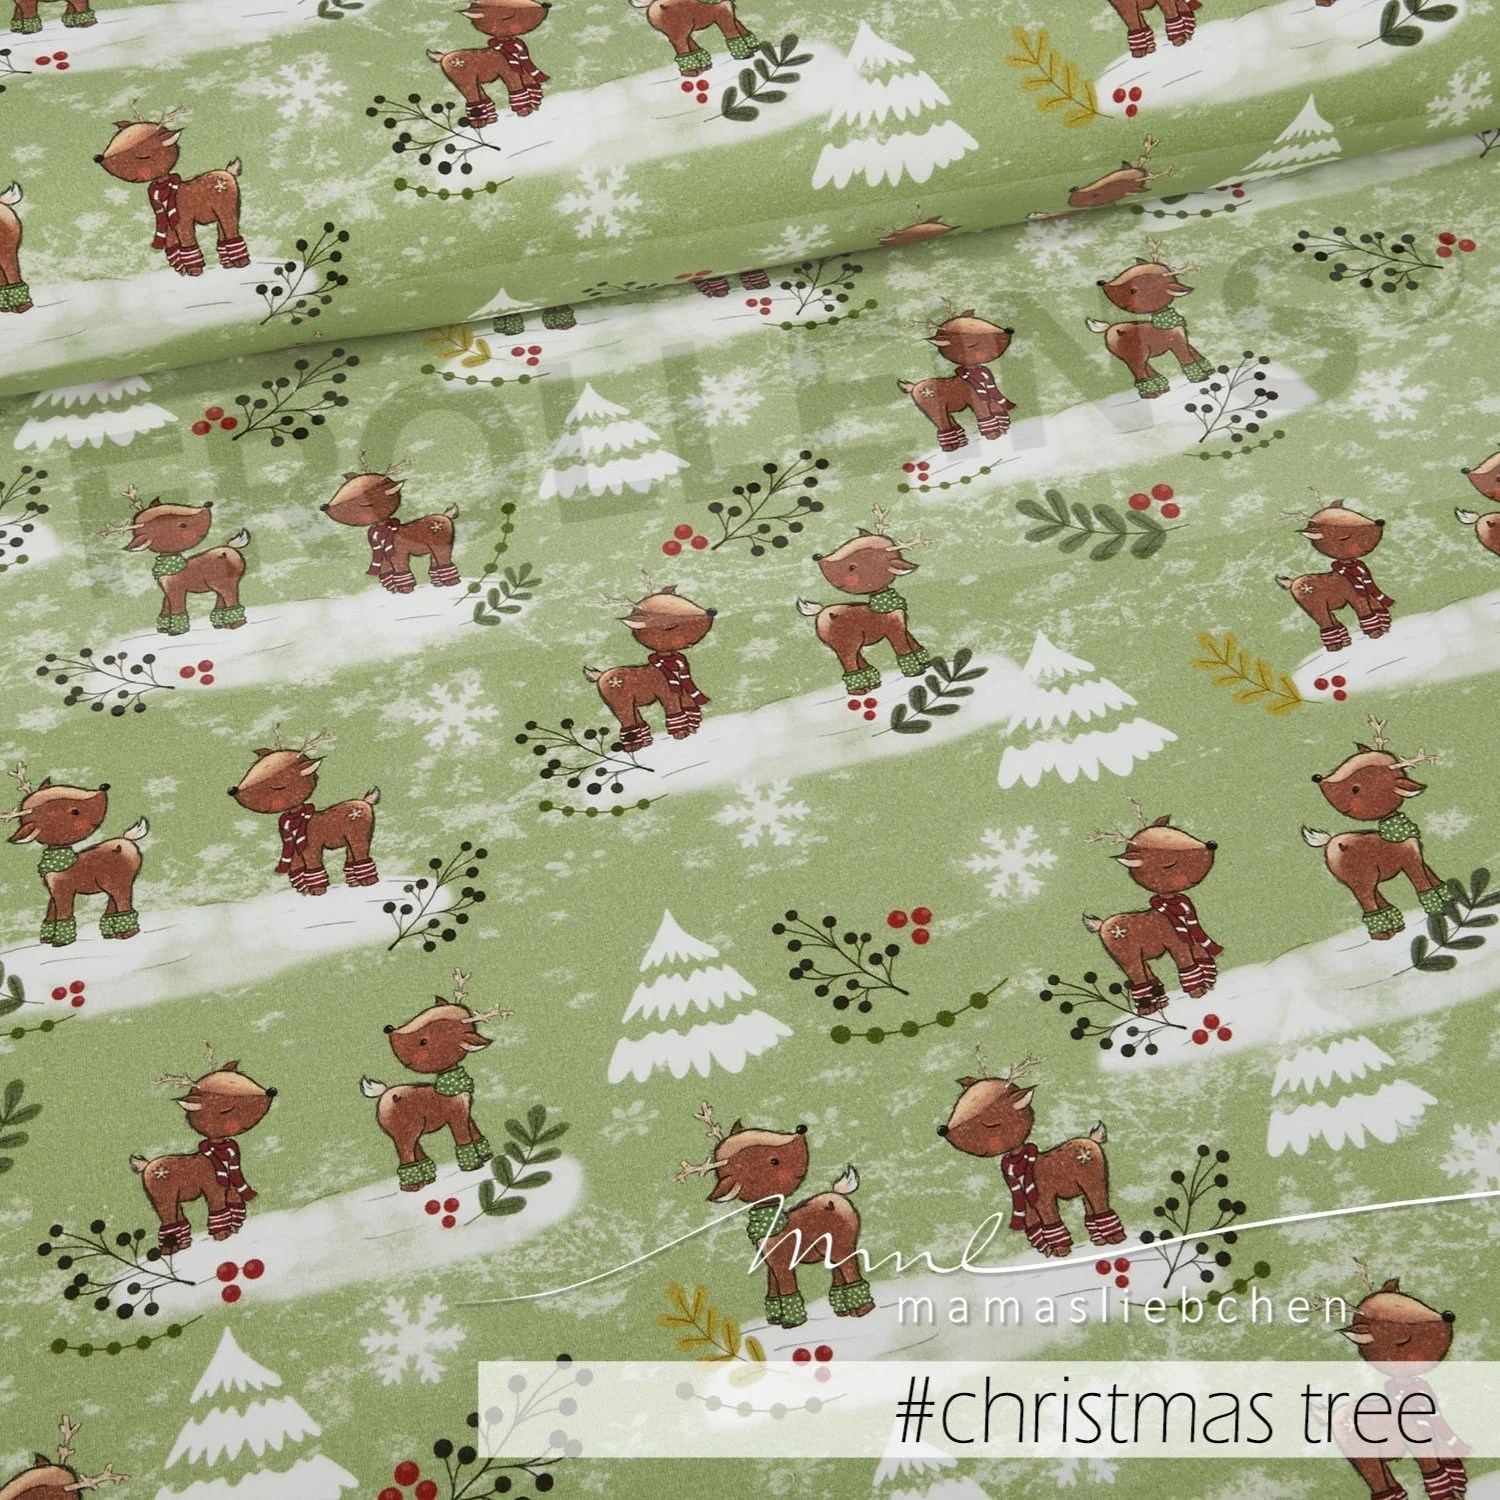 Quilt Oberhausen French Terry Jersey Winter Fawn Green Christmas Tree